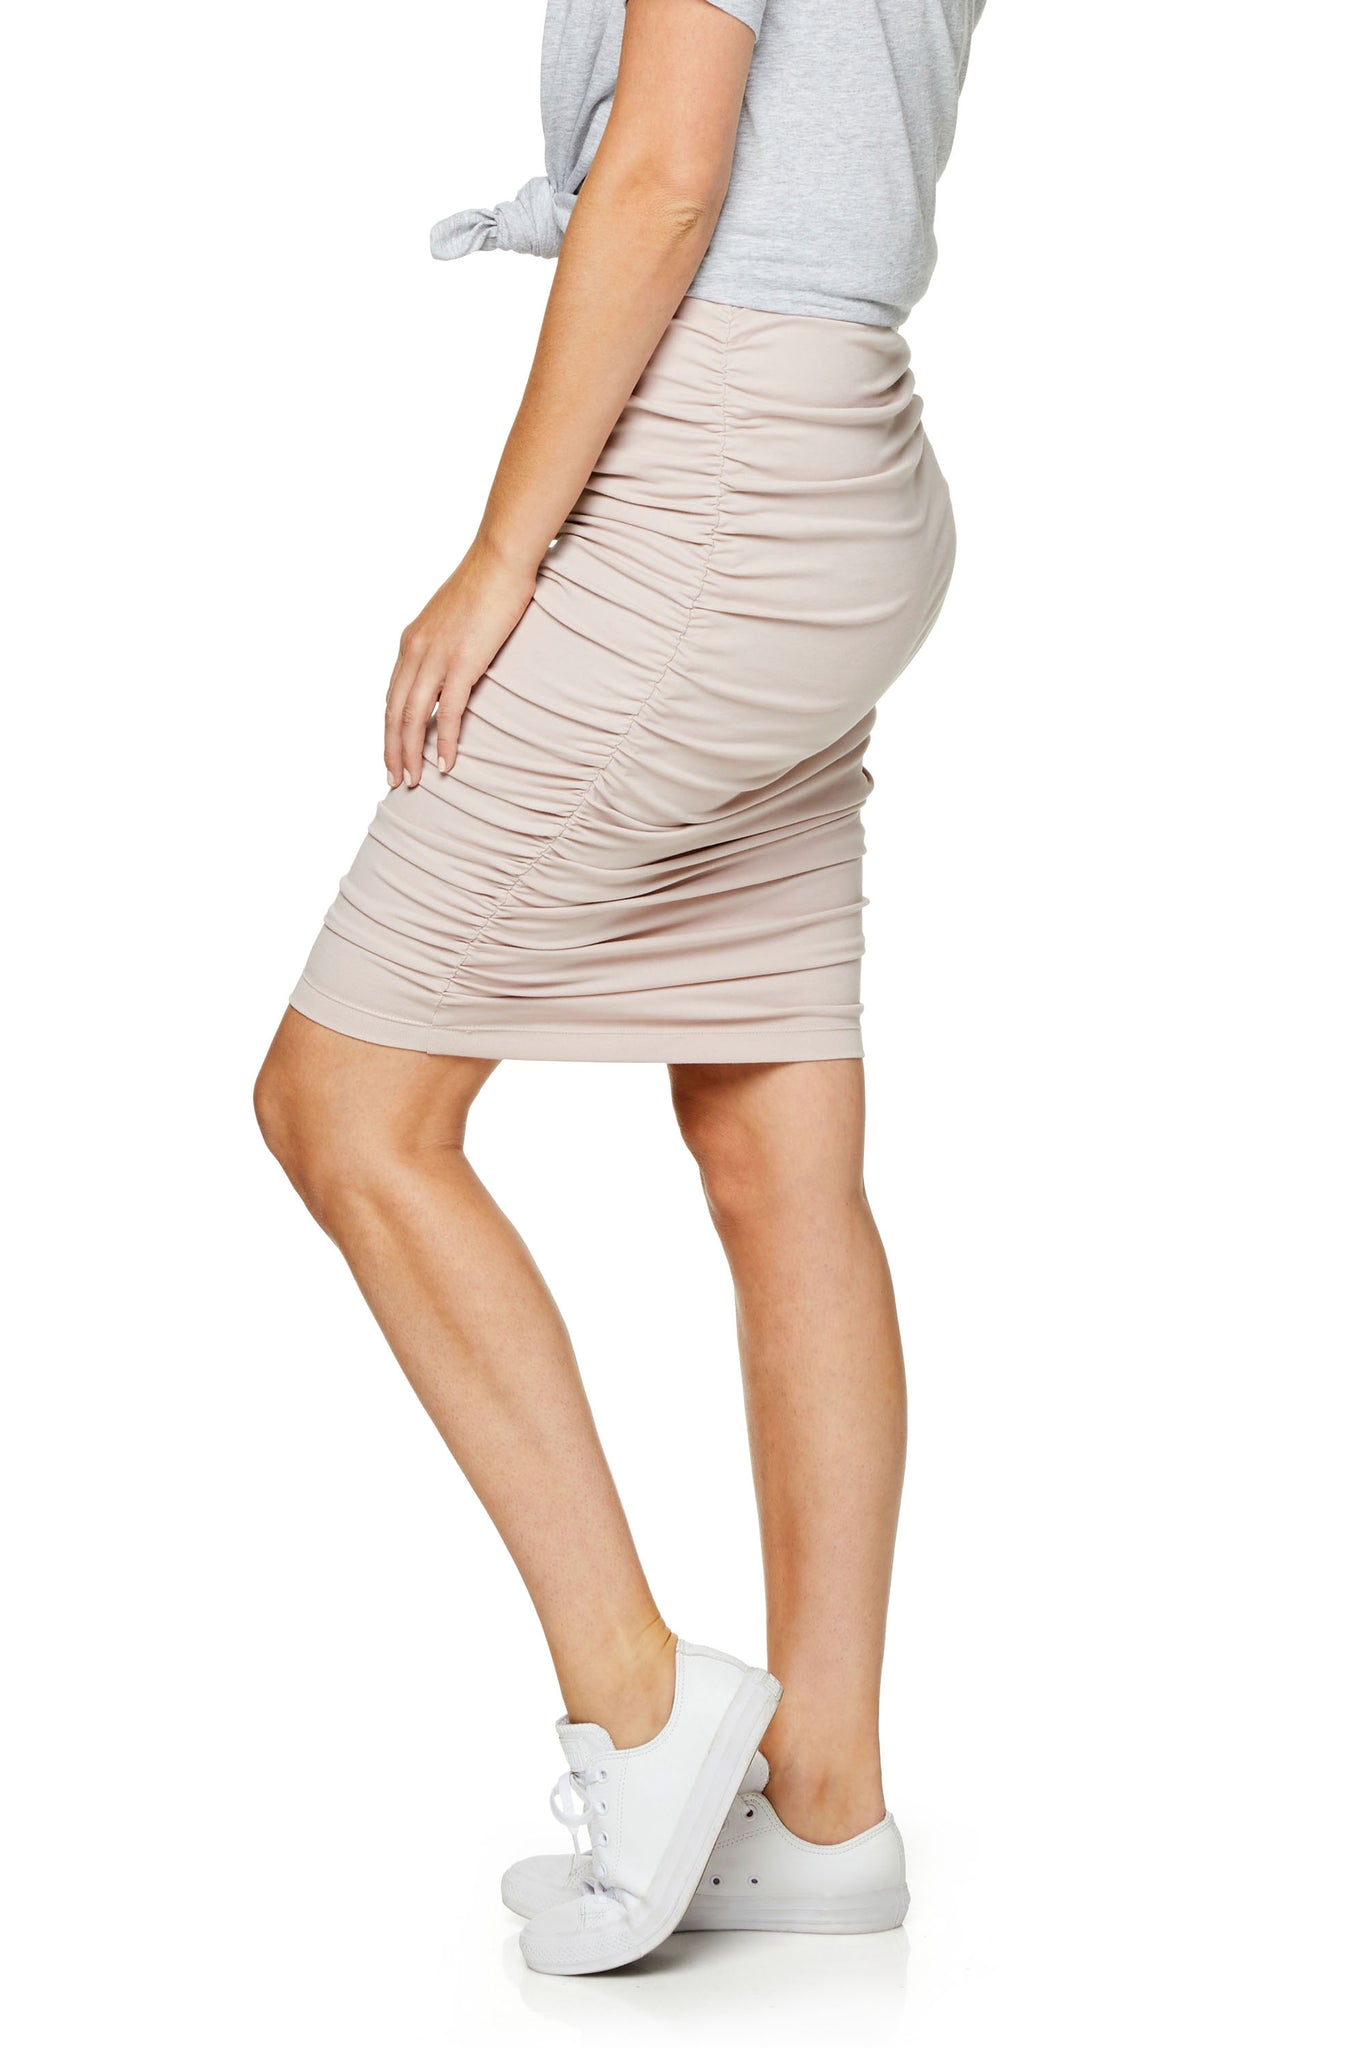 Ruched Maternity Skirt - Pink 7